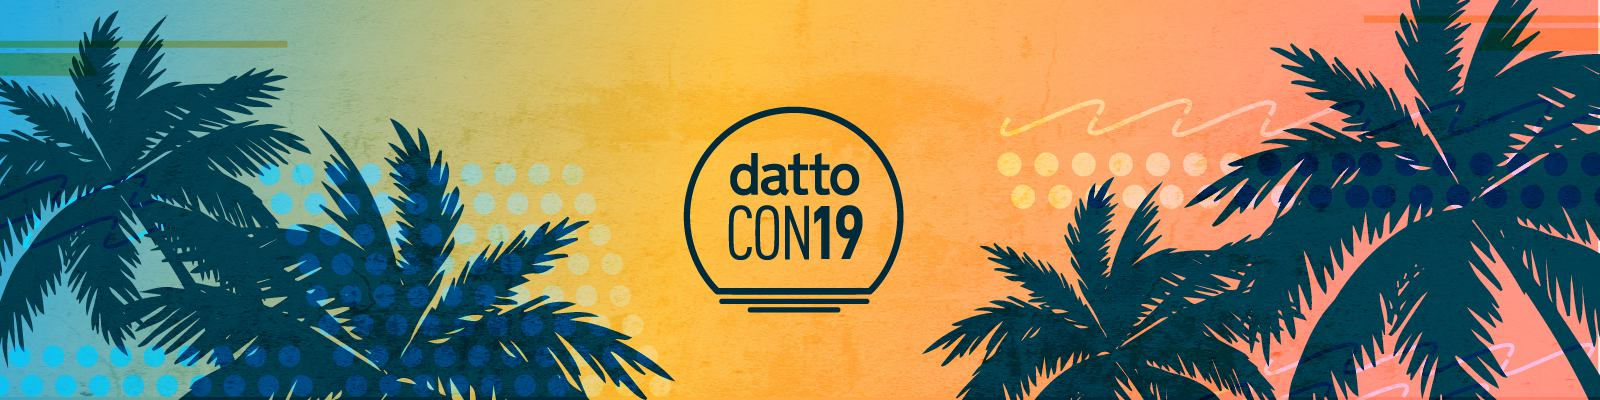 Register for Our Post-DattoCon Webinars